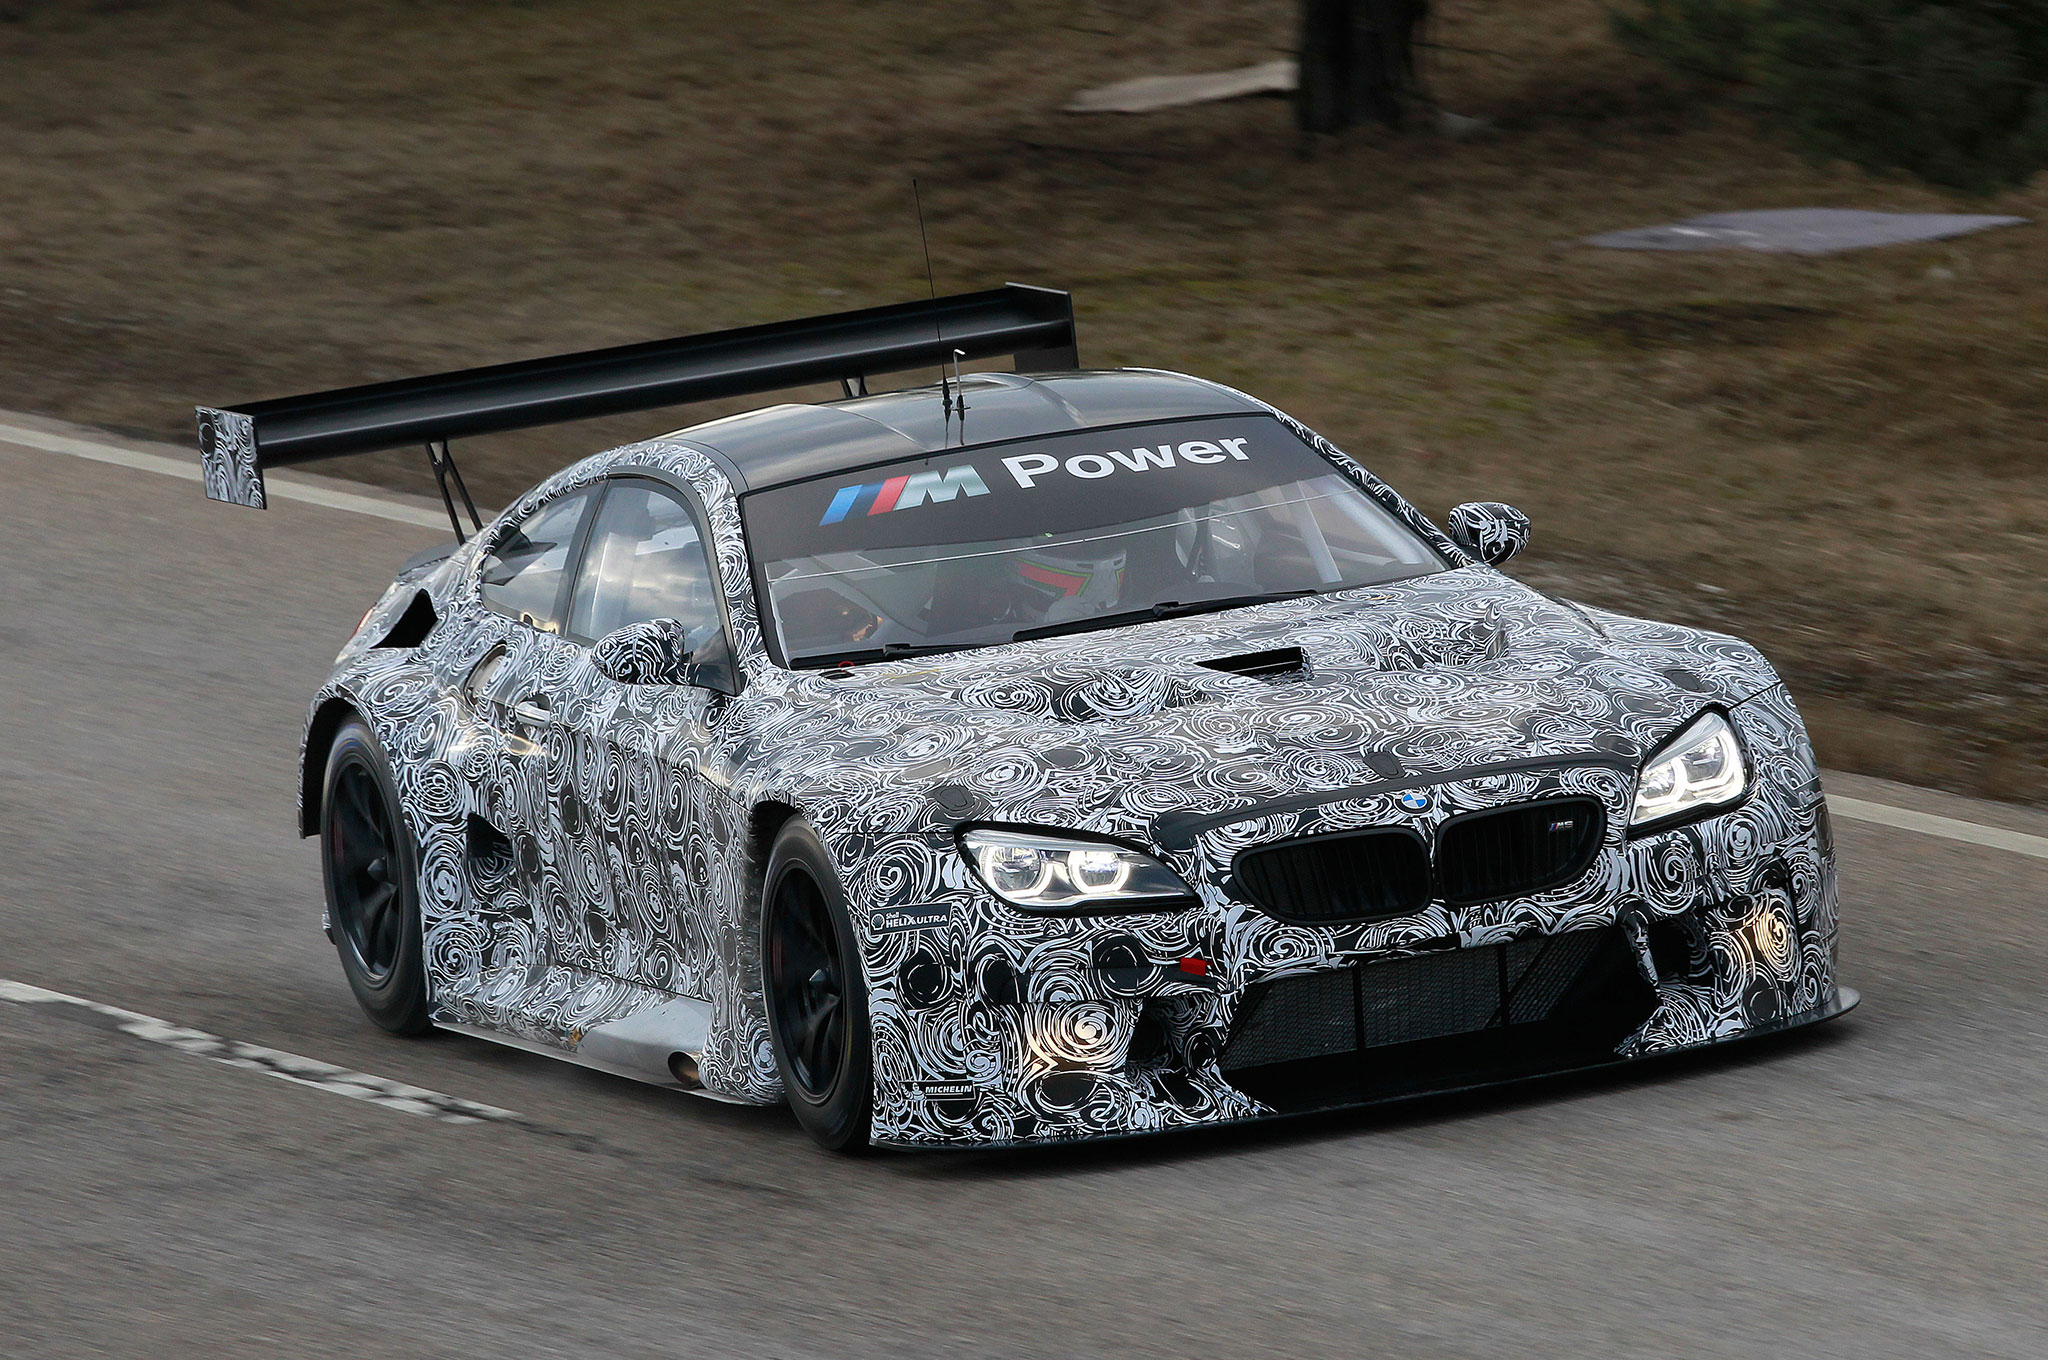 Bmw M6 Gt3 Racing Car Revealed